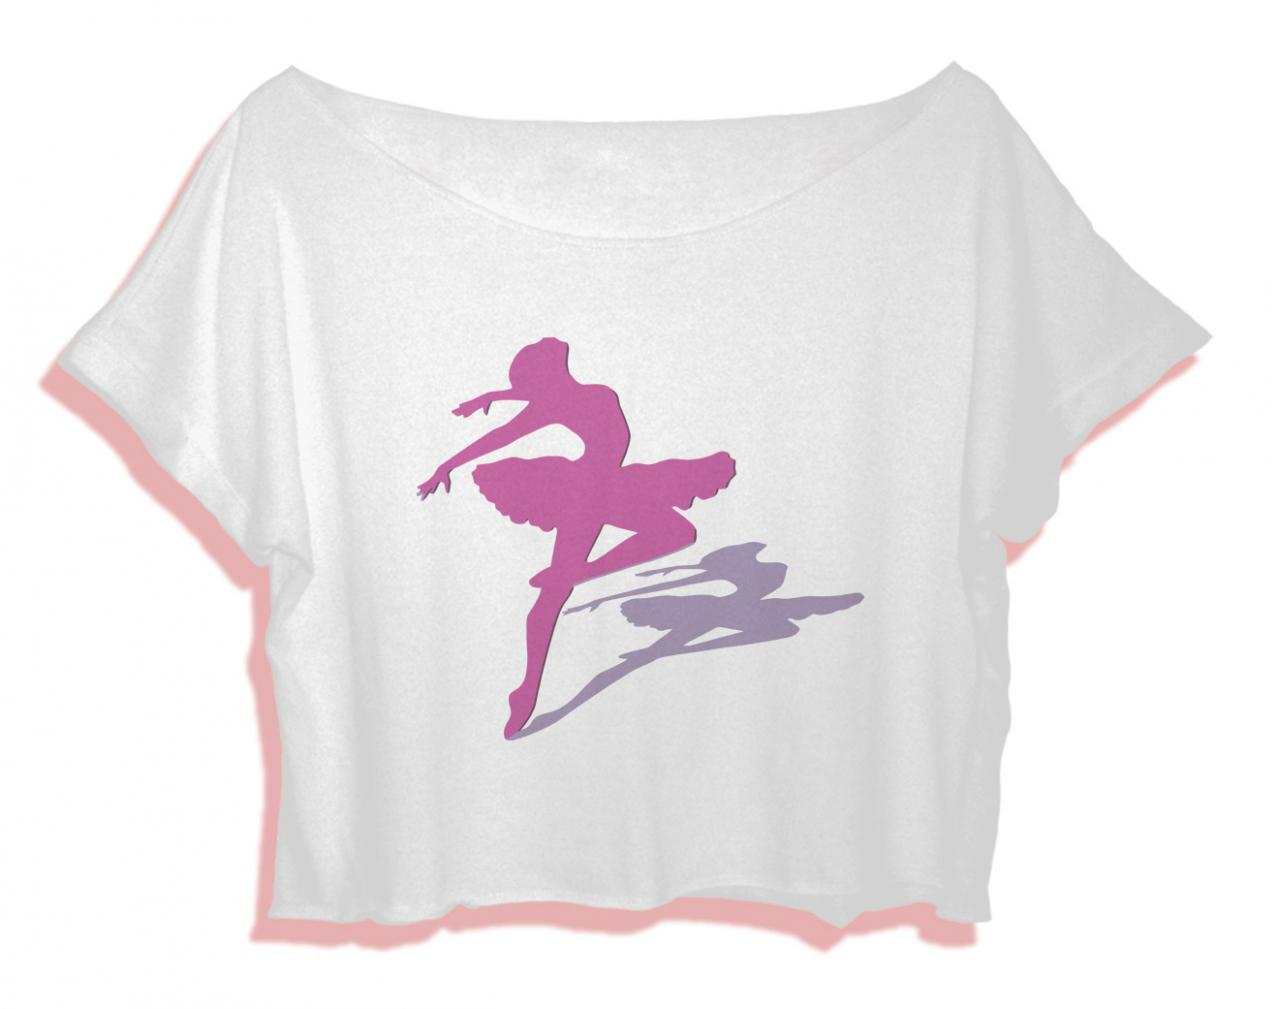 ballerina dancing shirt women crop top ballerina style crop tee ballet t-shirt all size black white Pinterest Tumblr